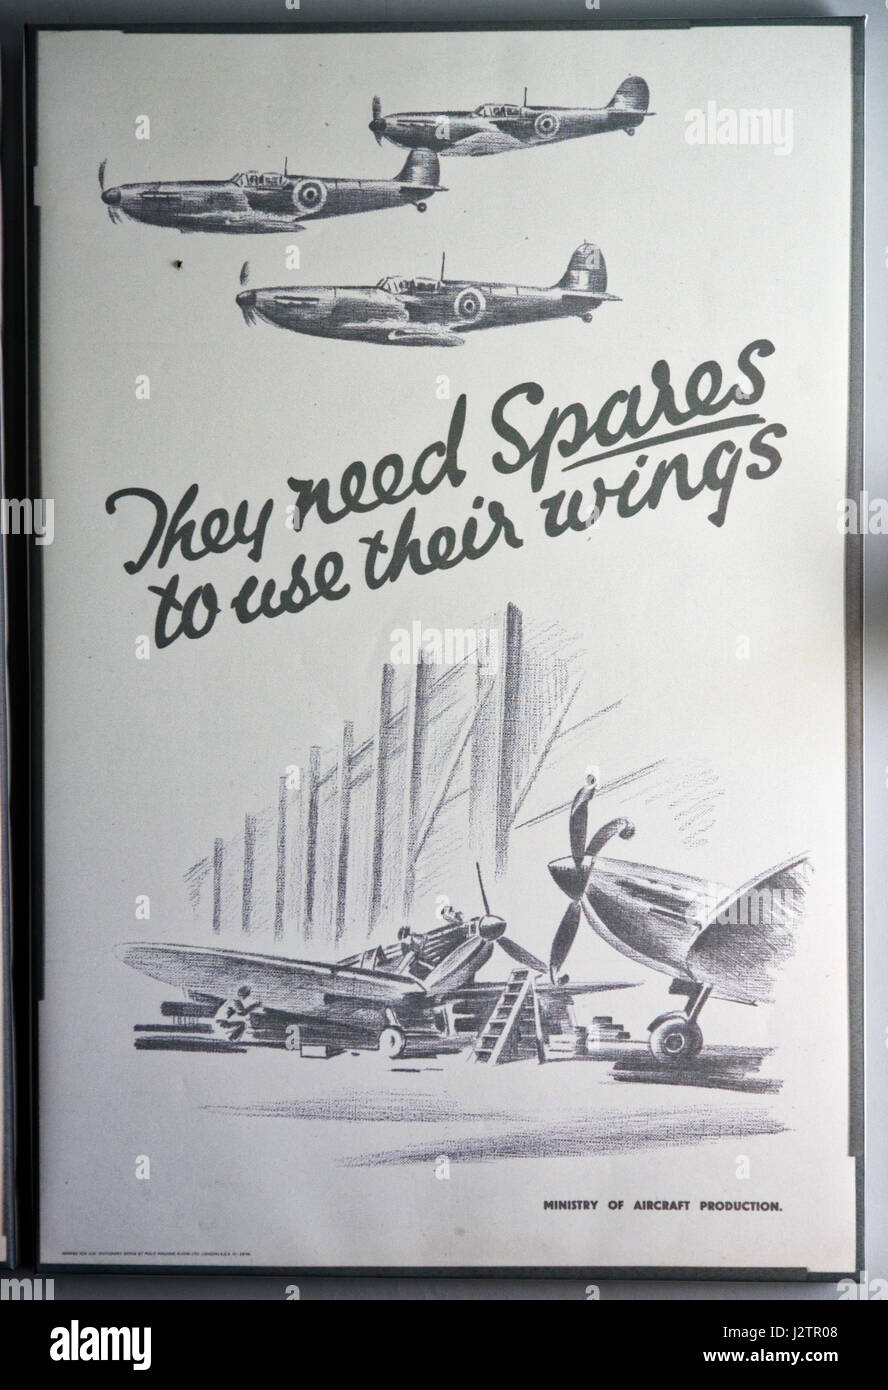 They Need Spares to Use Their Wings: A second world war propaganda poster supporting aircraft mechanics and repair - Stock Image